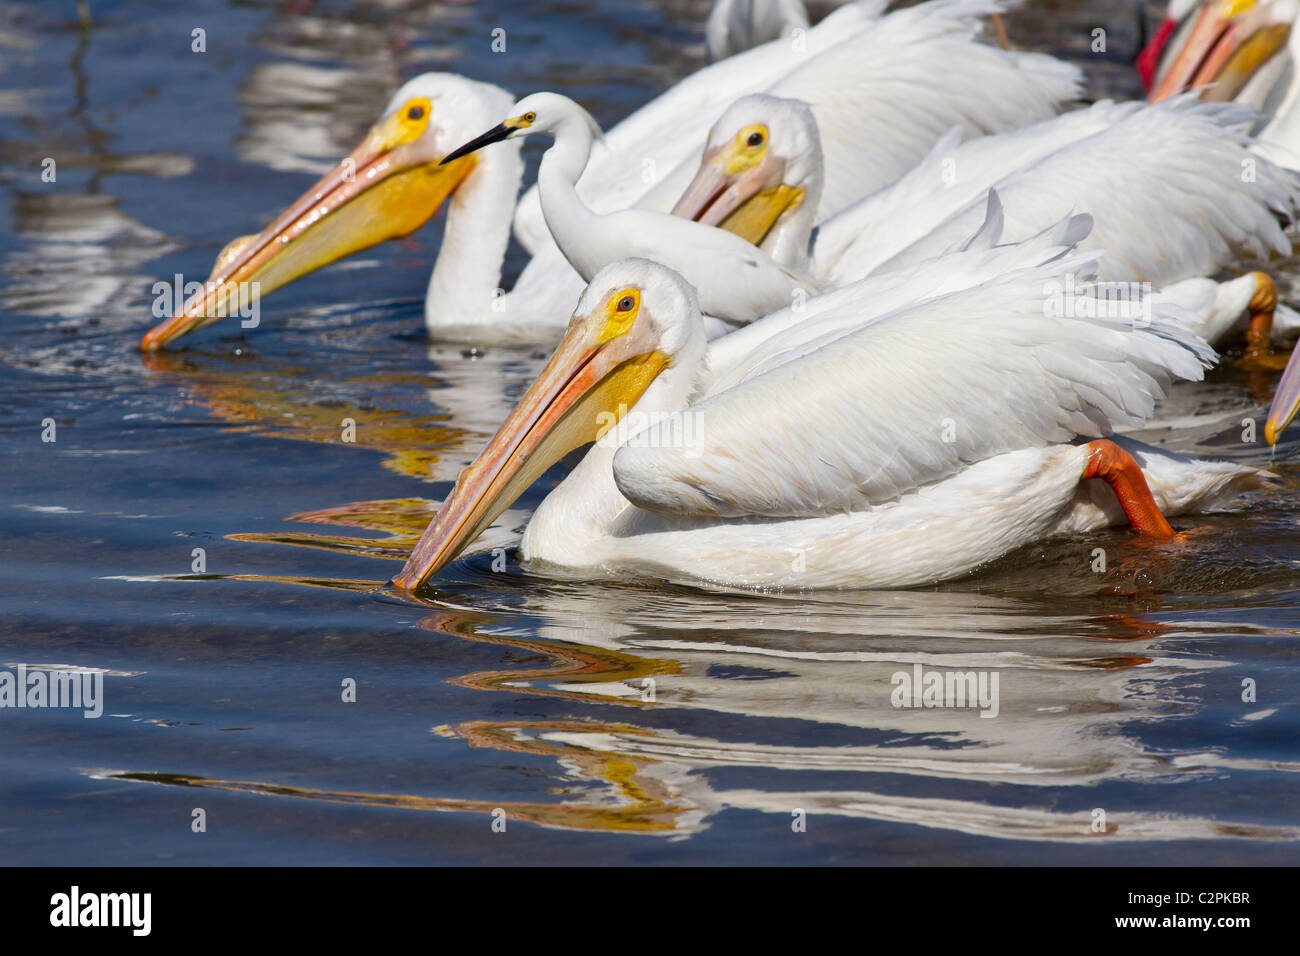 American white pelican, Pelicanus erythrorhynchos, Ding Darling Wildlife Refuge, Sanibel, Florida, USA - Stock Image